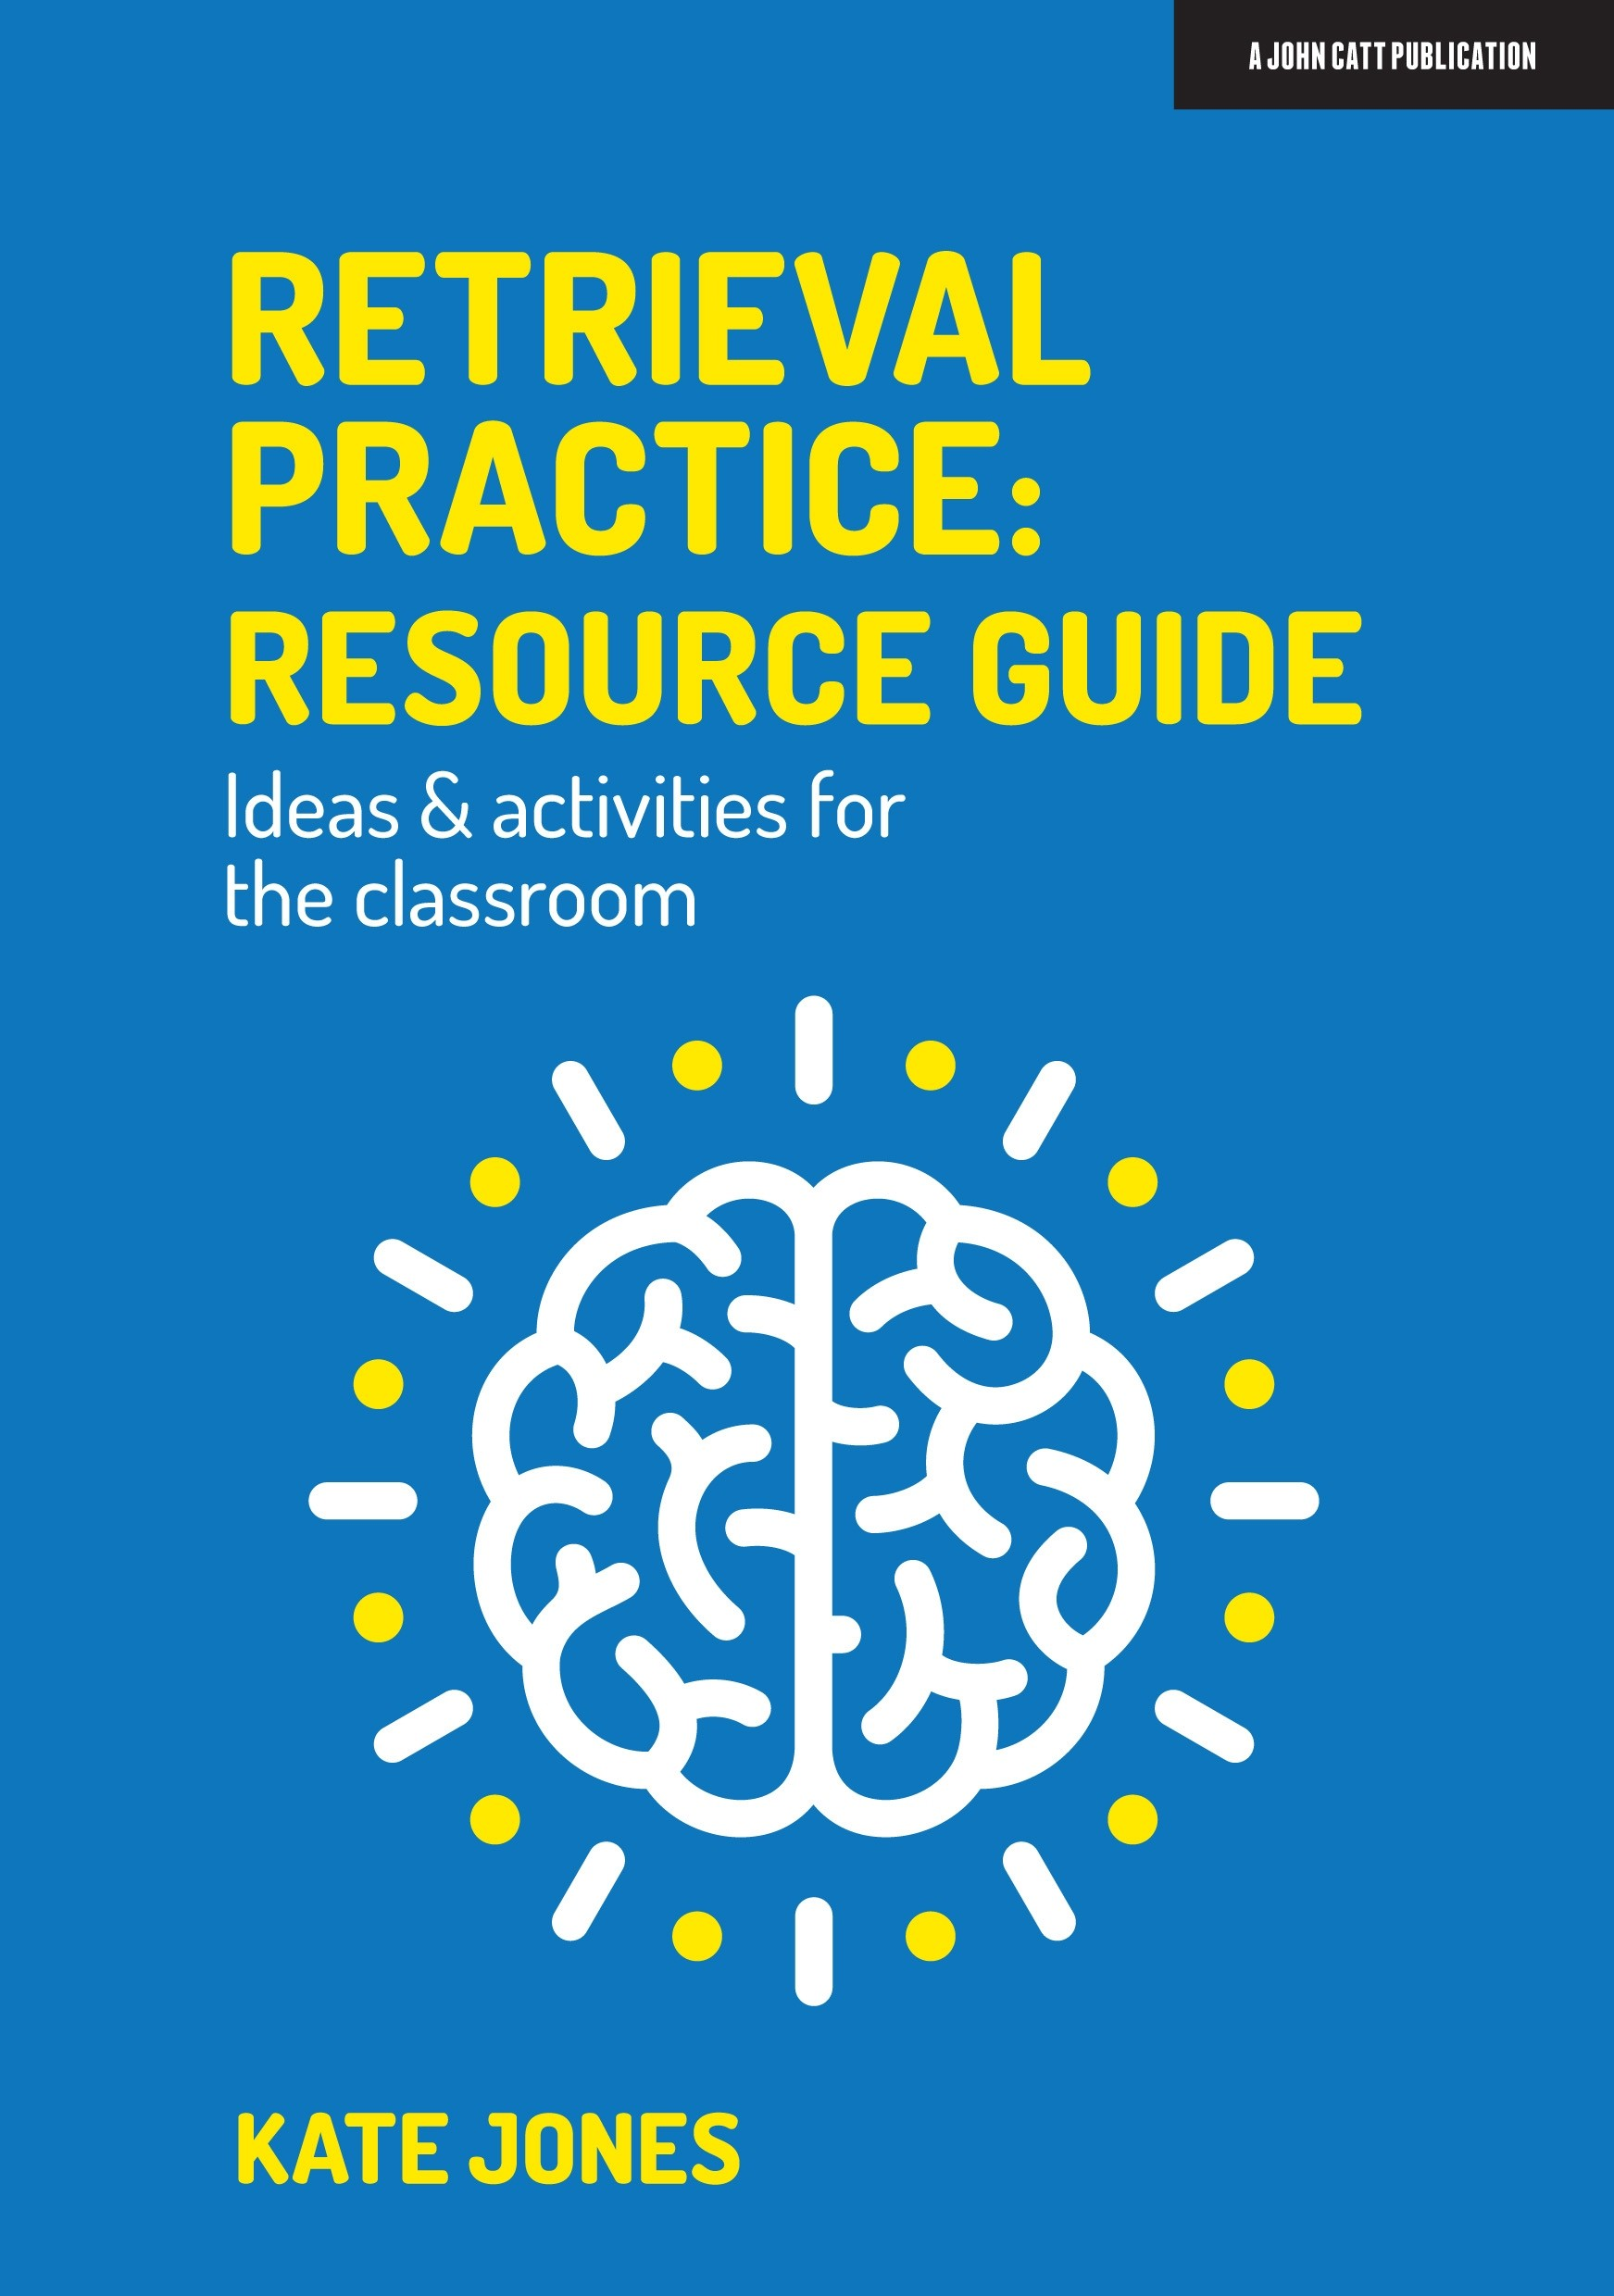 Retrieval Practice: Resource Guide: Ideas & activities for the classroom